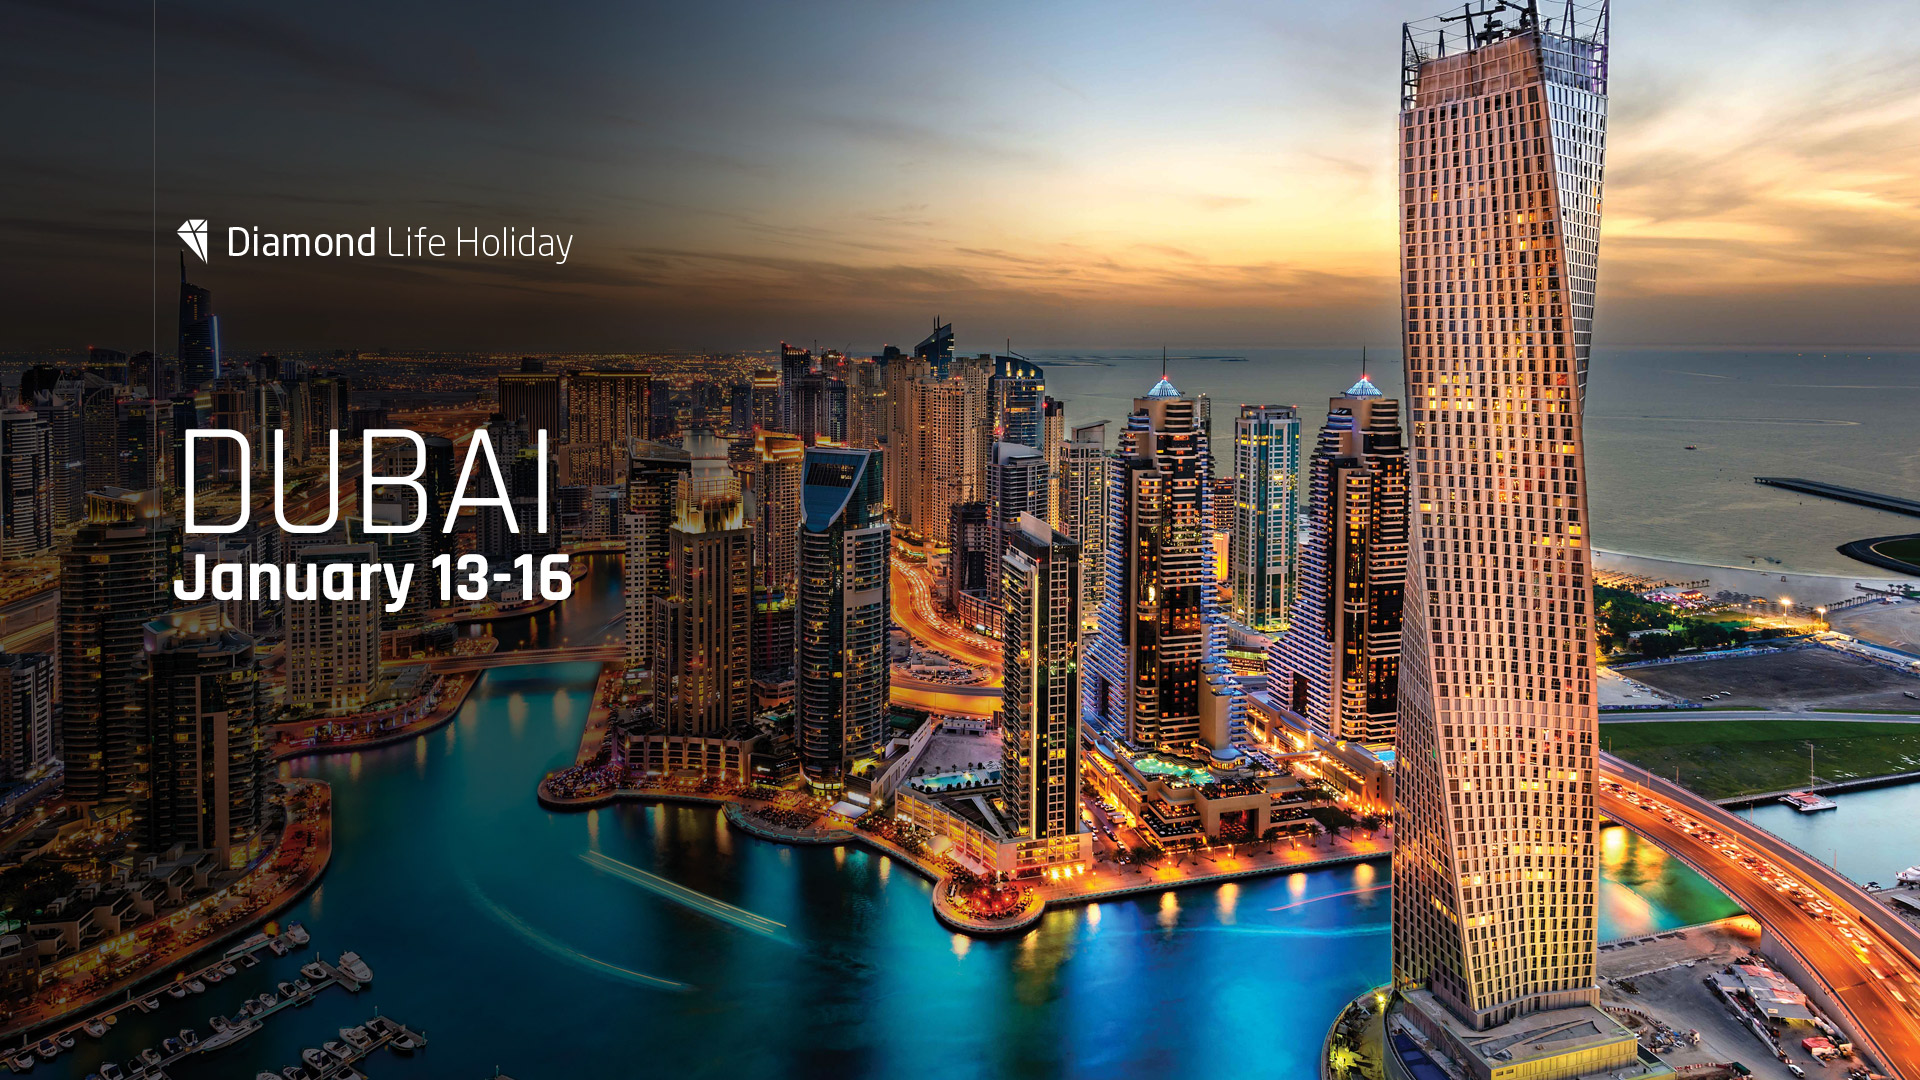 Dimond Life Holiday Dubai